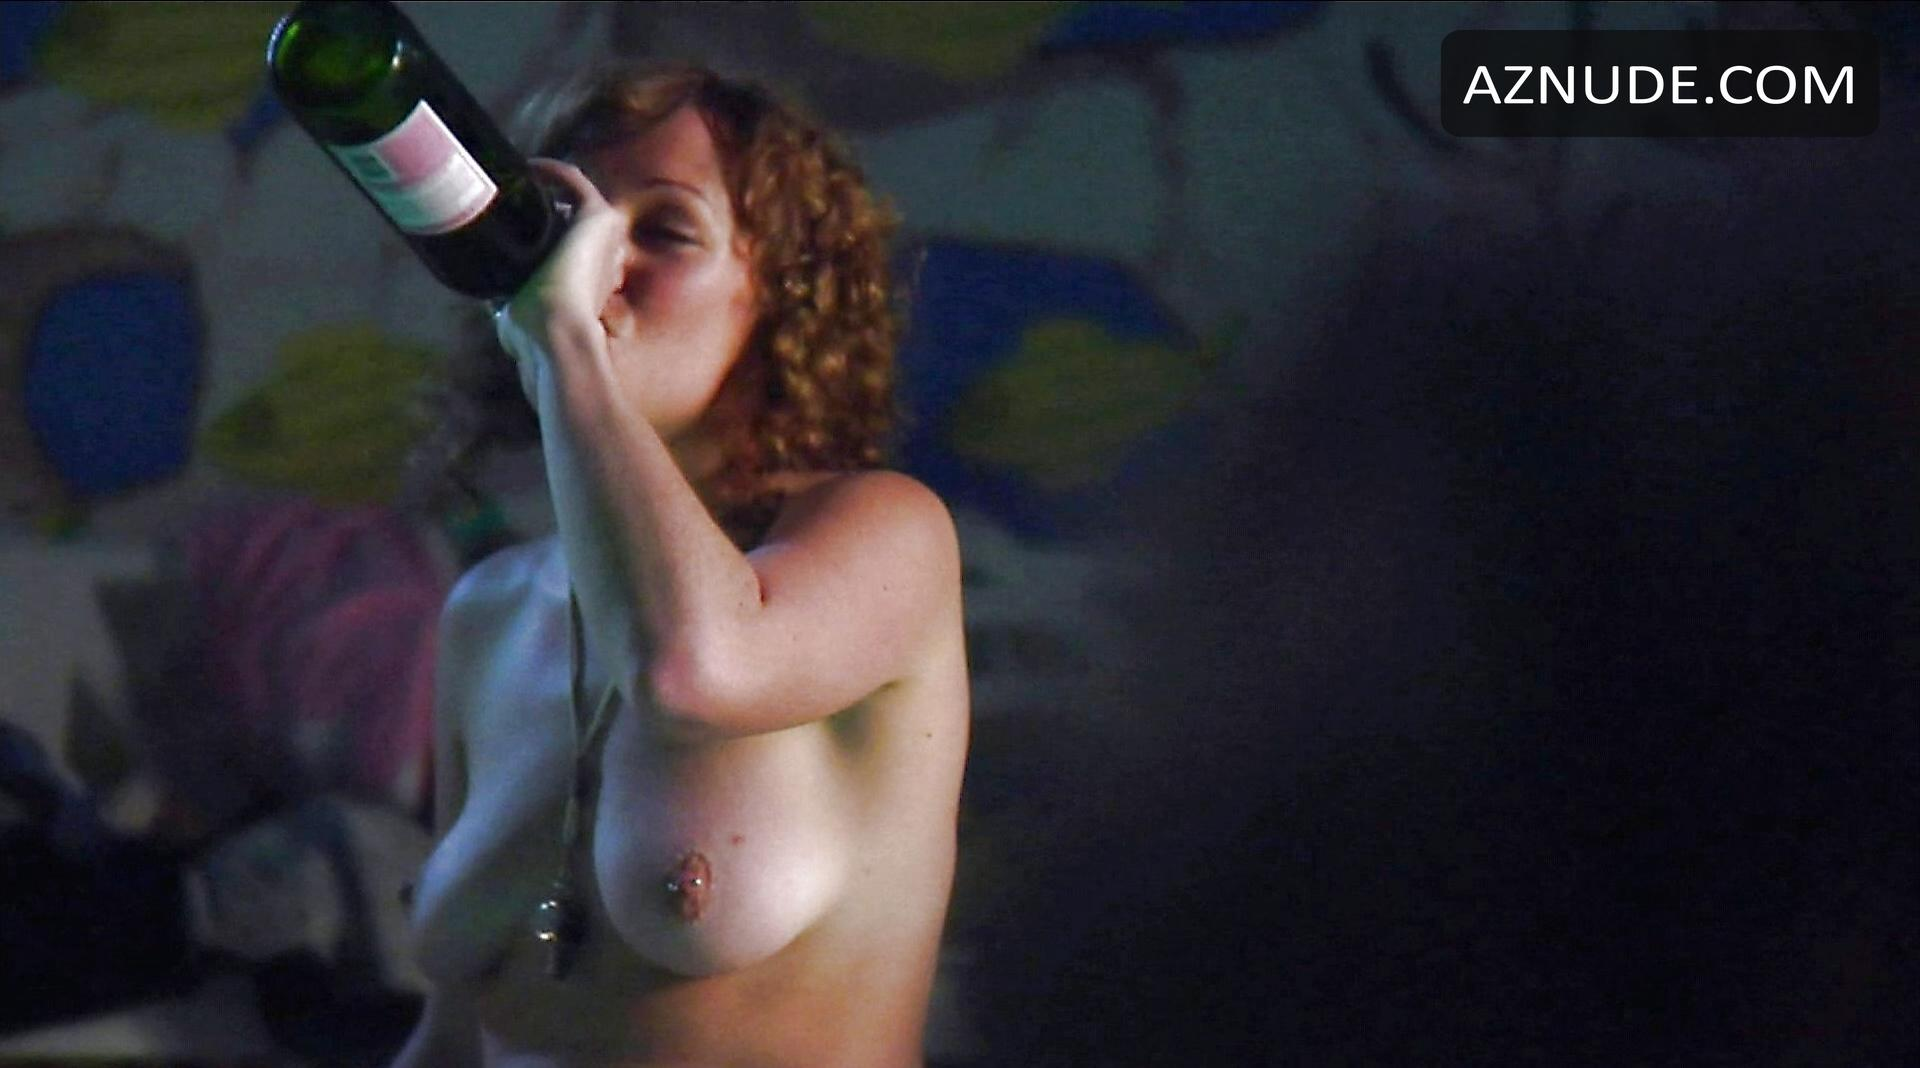 Angelina jolie nude topless and sex takin lives 2004 - 1 part 3